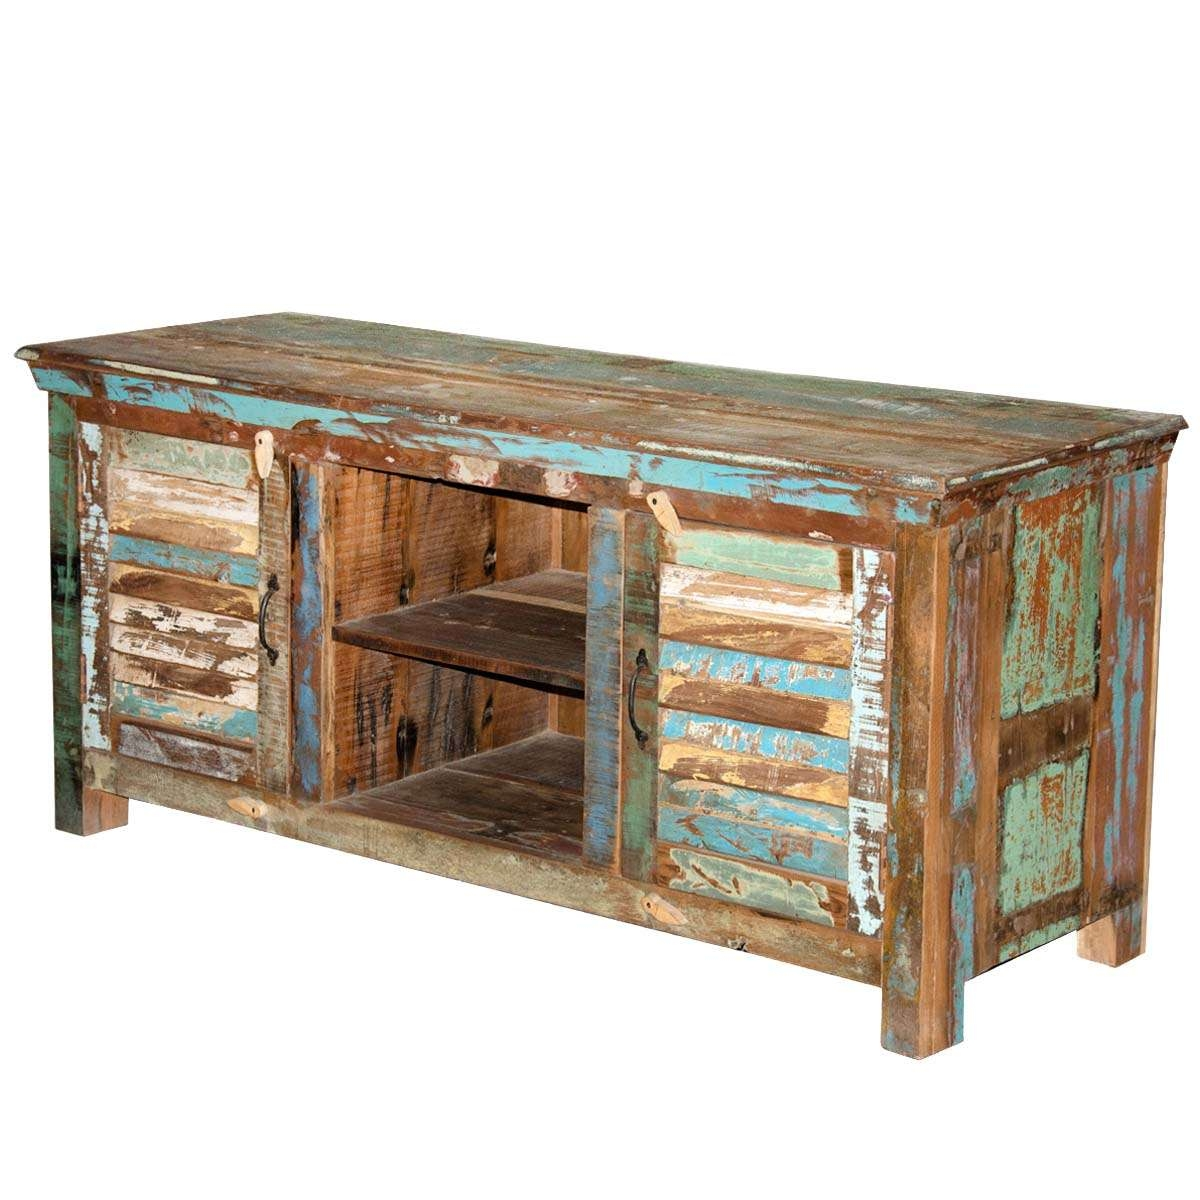 Rustic Shutter Doors Reclaimed Wood Tv Stand Media Console With Regard To Wood Tv Stands (View 3 of 15)